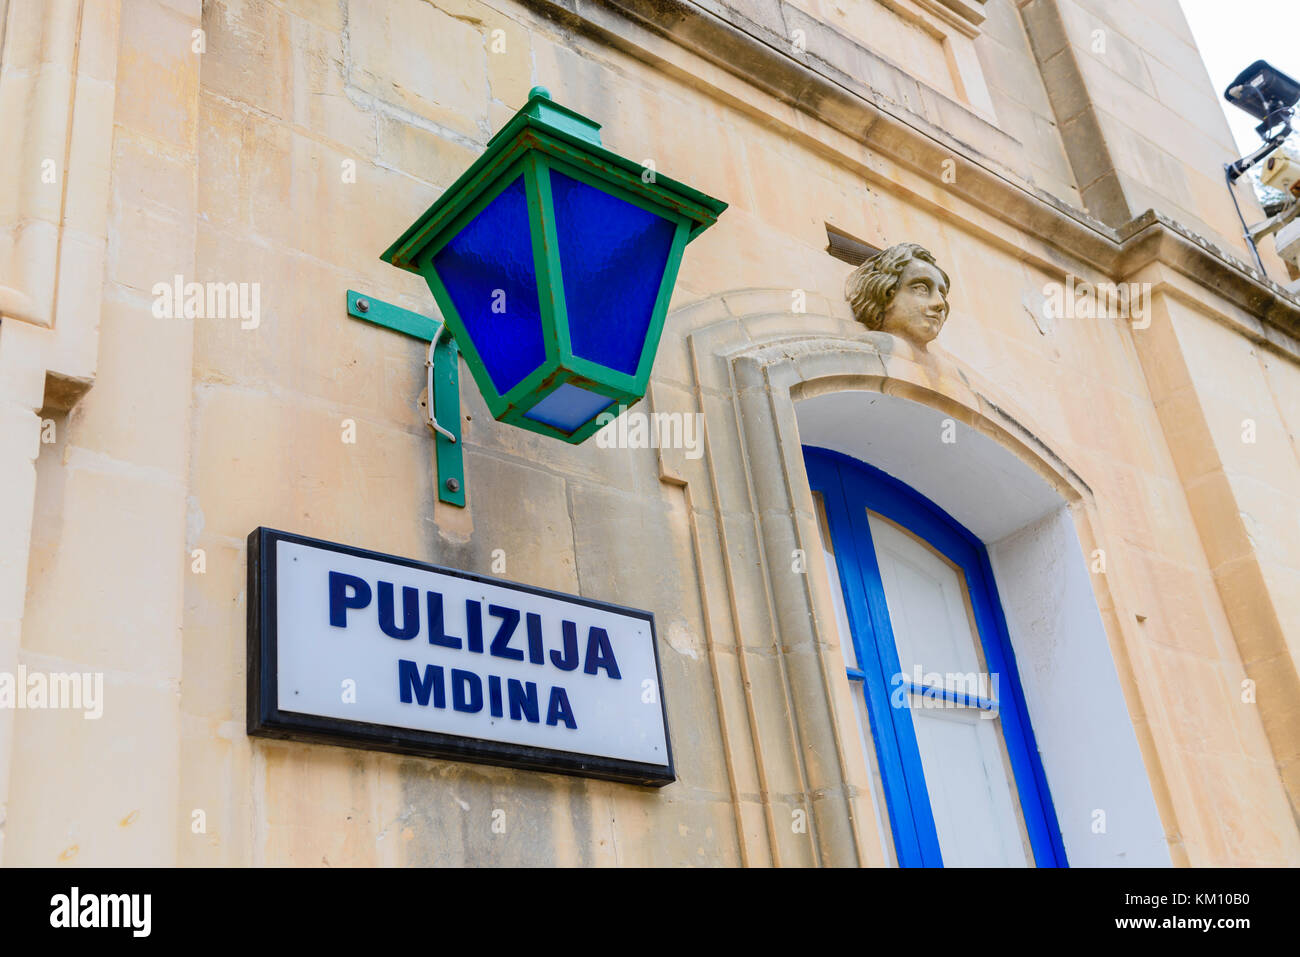 Police (pulizija) station and blue police light in the Walled City of Mdina, Malta - Stock Image